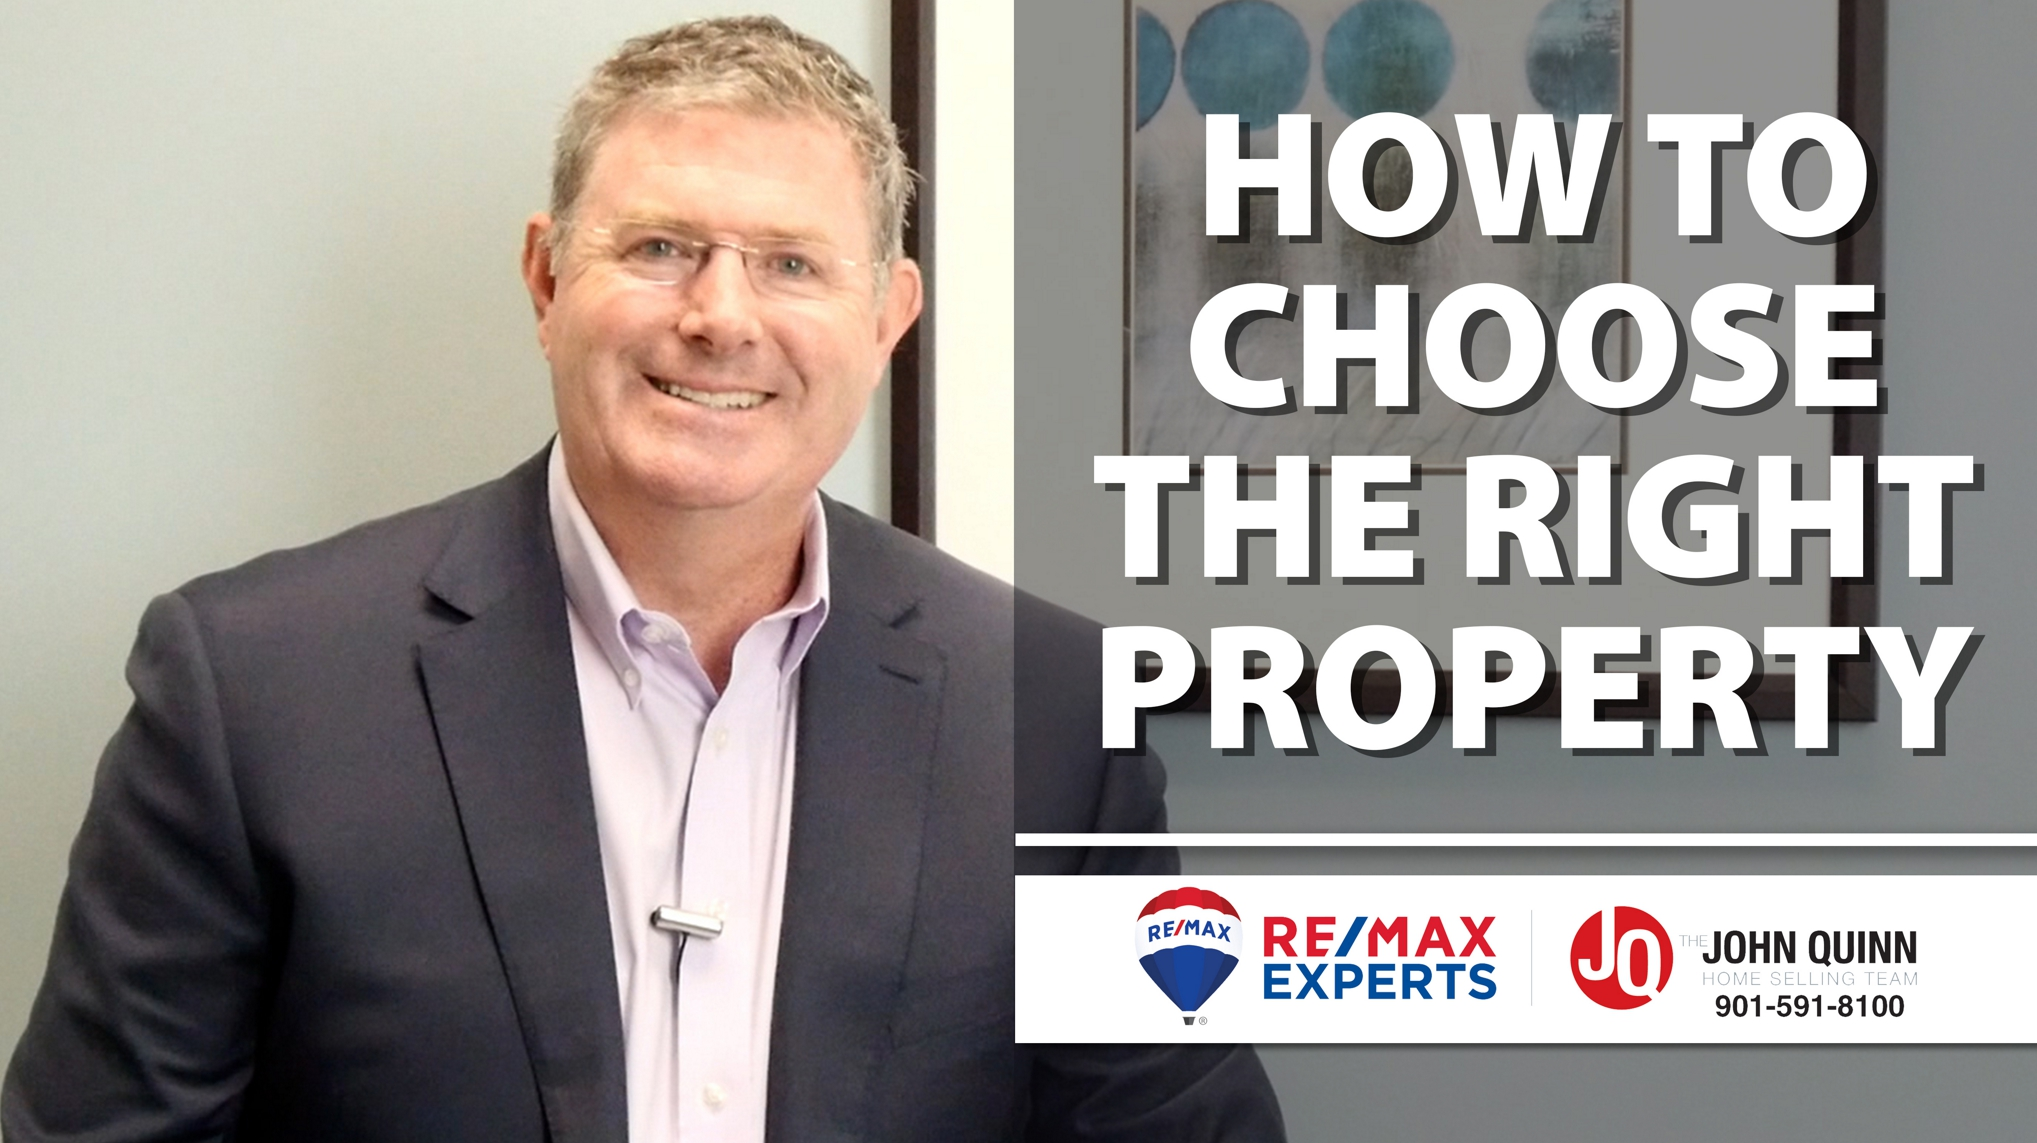 4 Tips to Help You Choose the Right Property